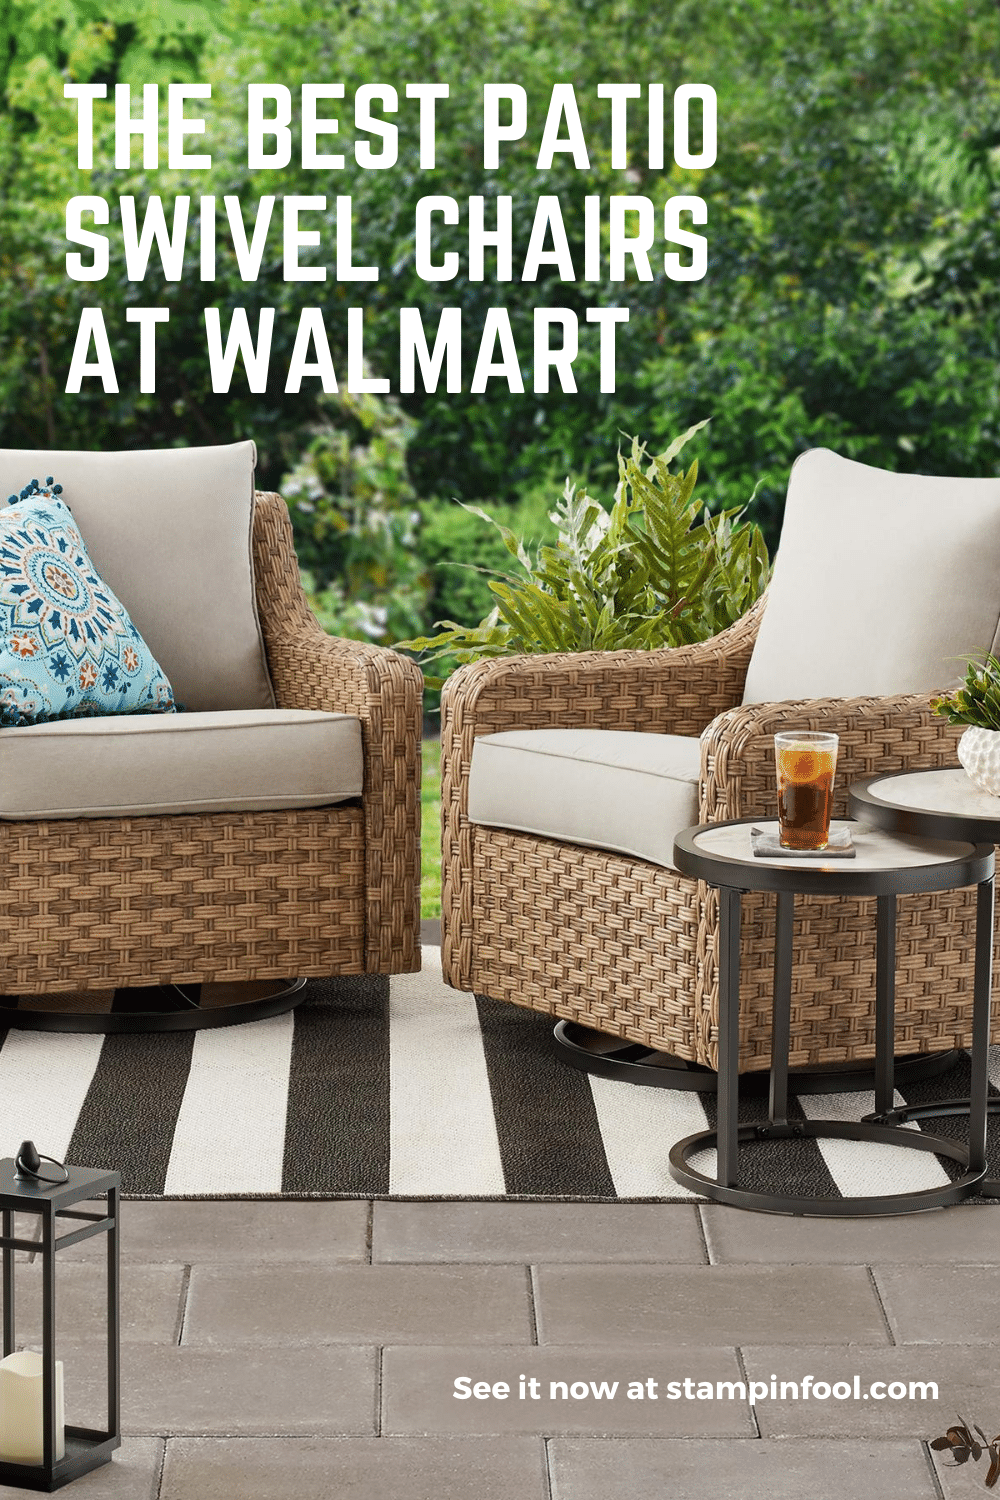 The Best Patio Swivel Chairs at Walmart